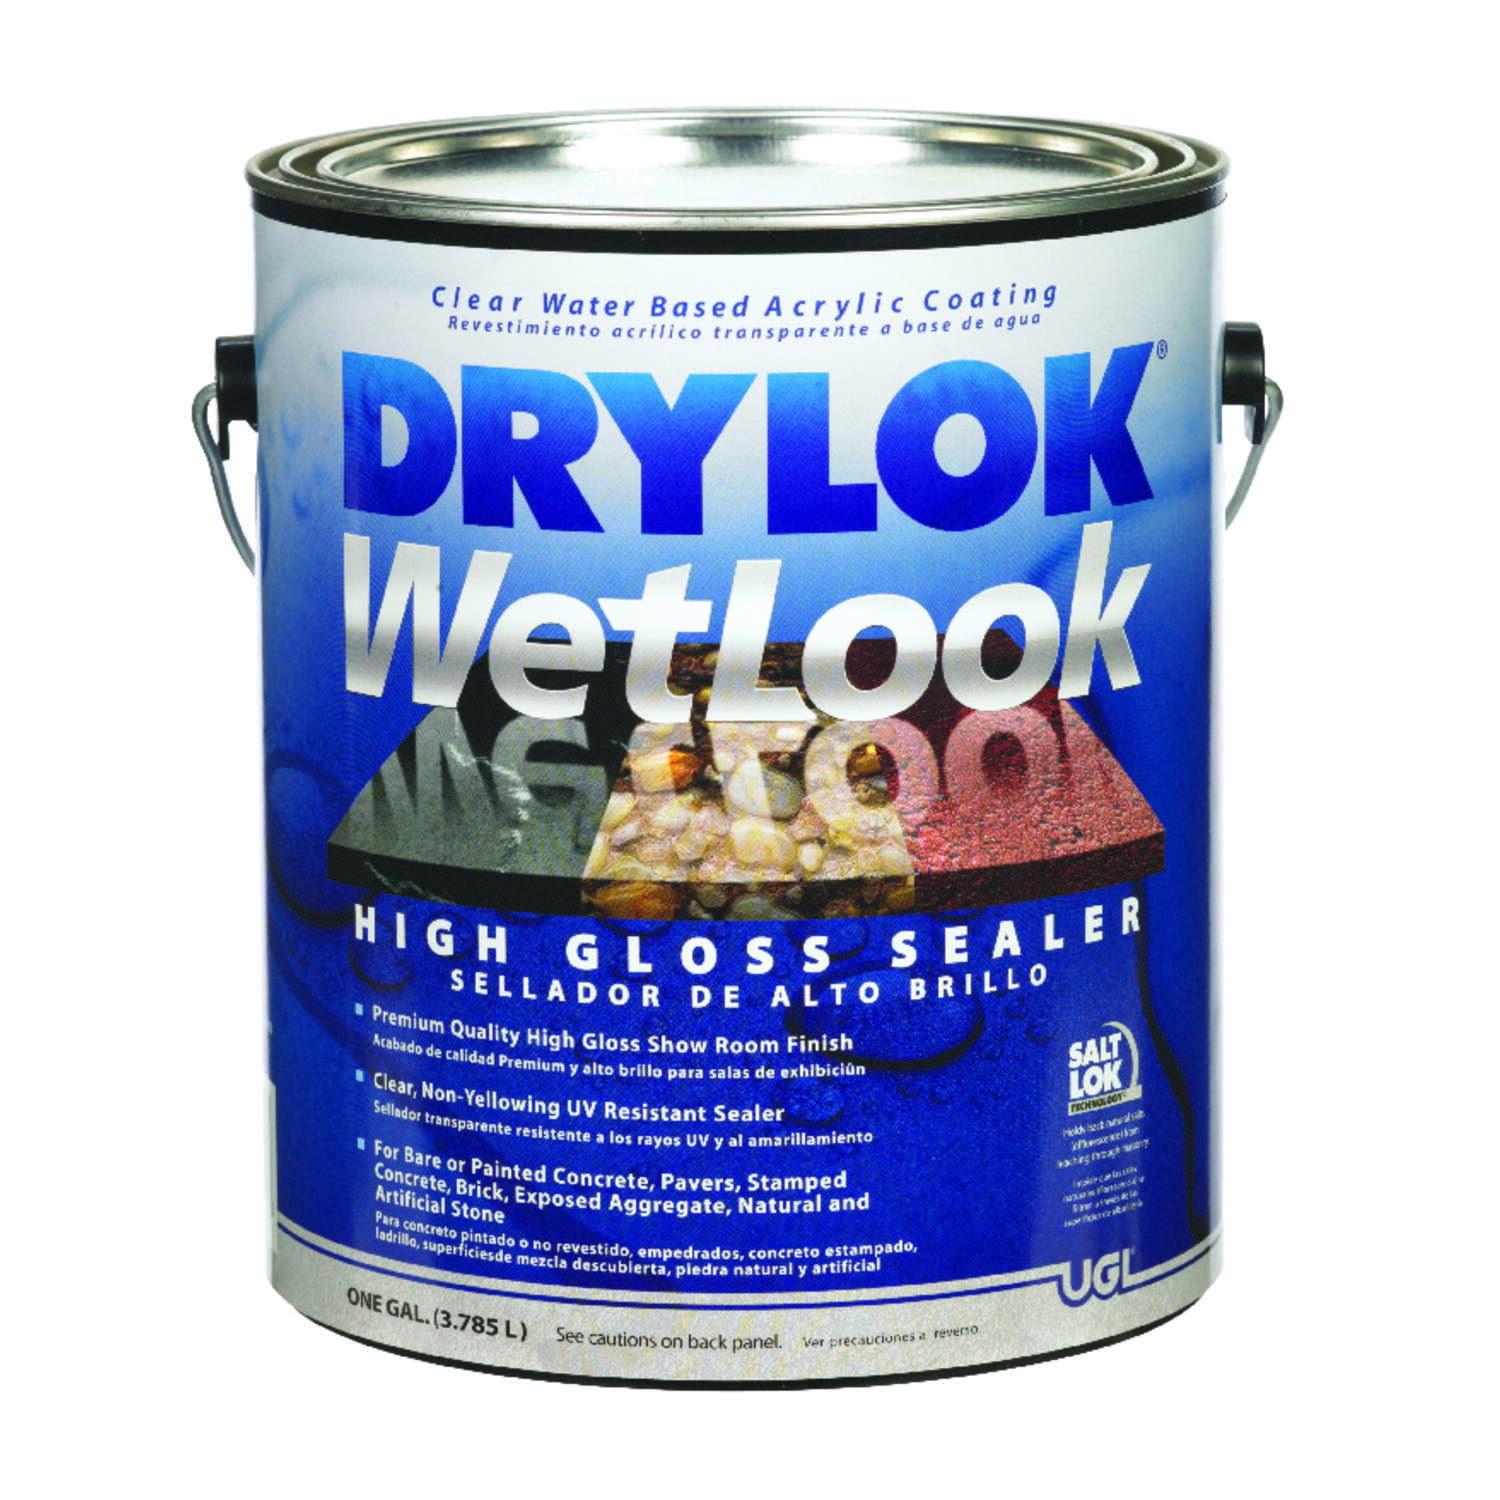 Drylok  WetLook  High-Gloss  Clear  Water-Based  Acrylic  Sealer  1 gal.